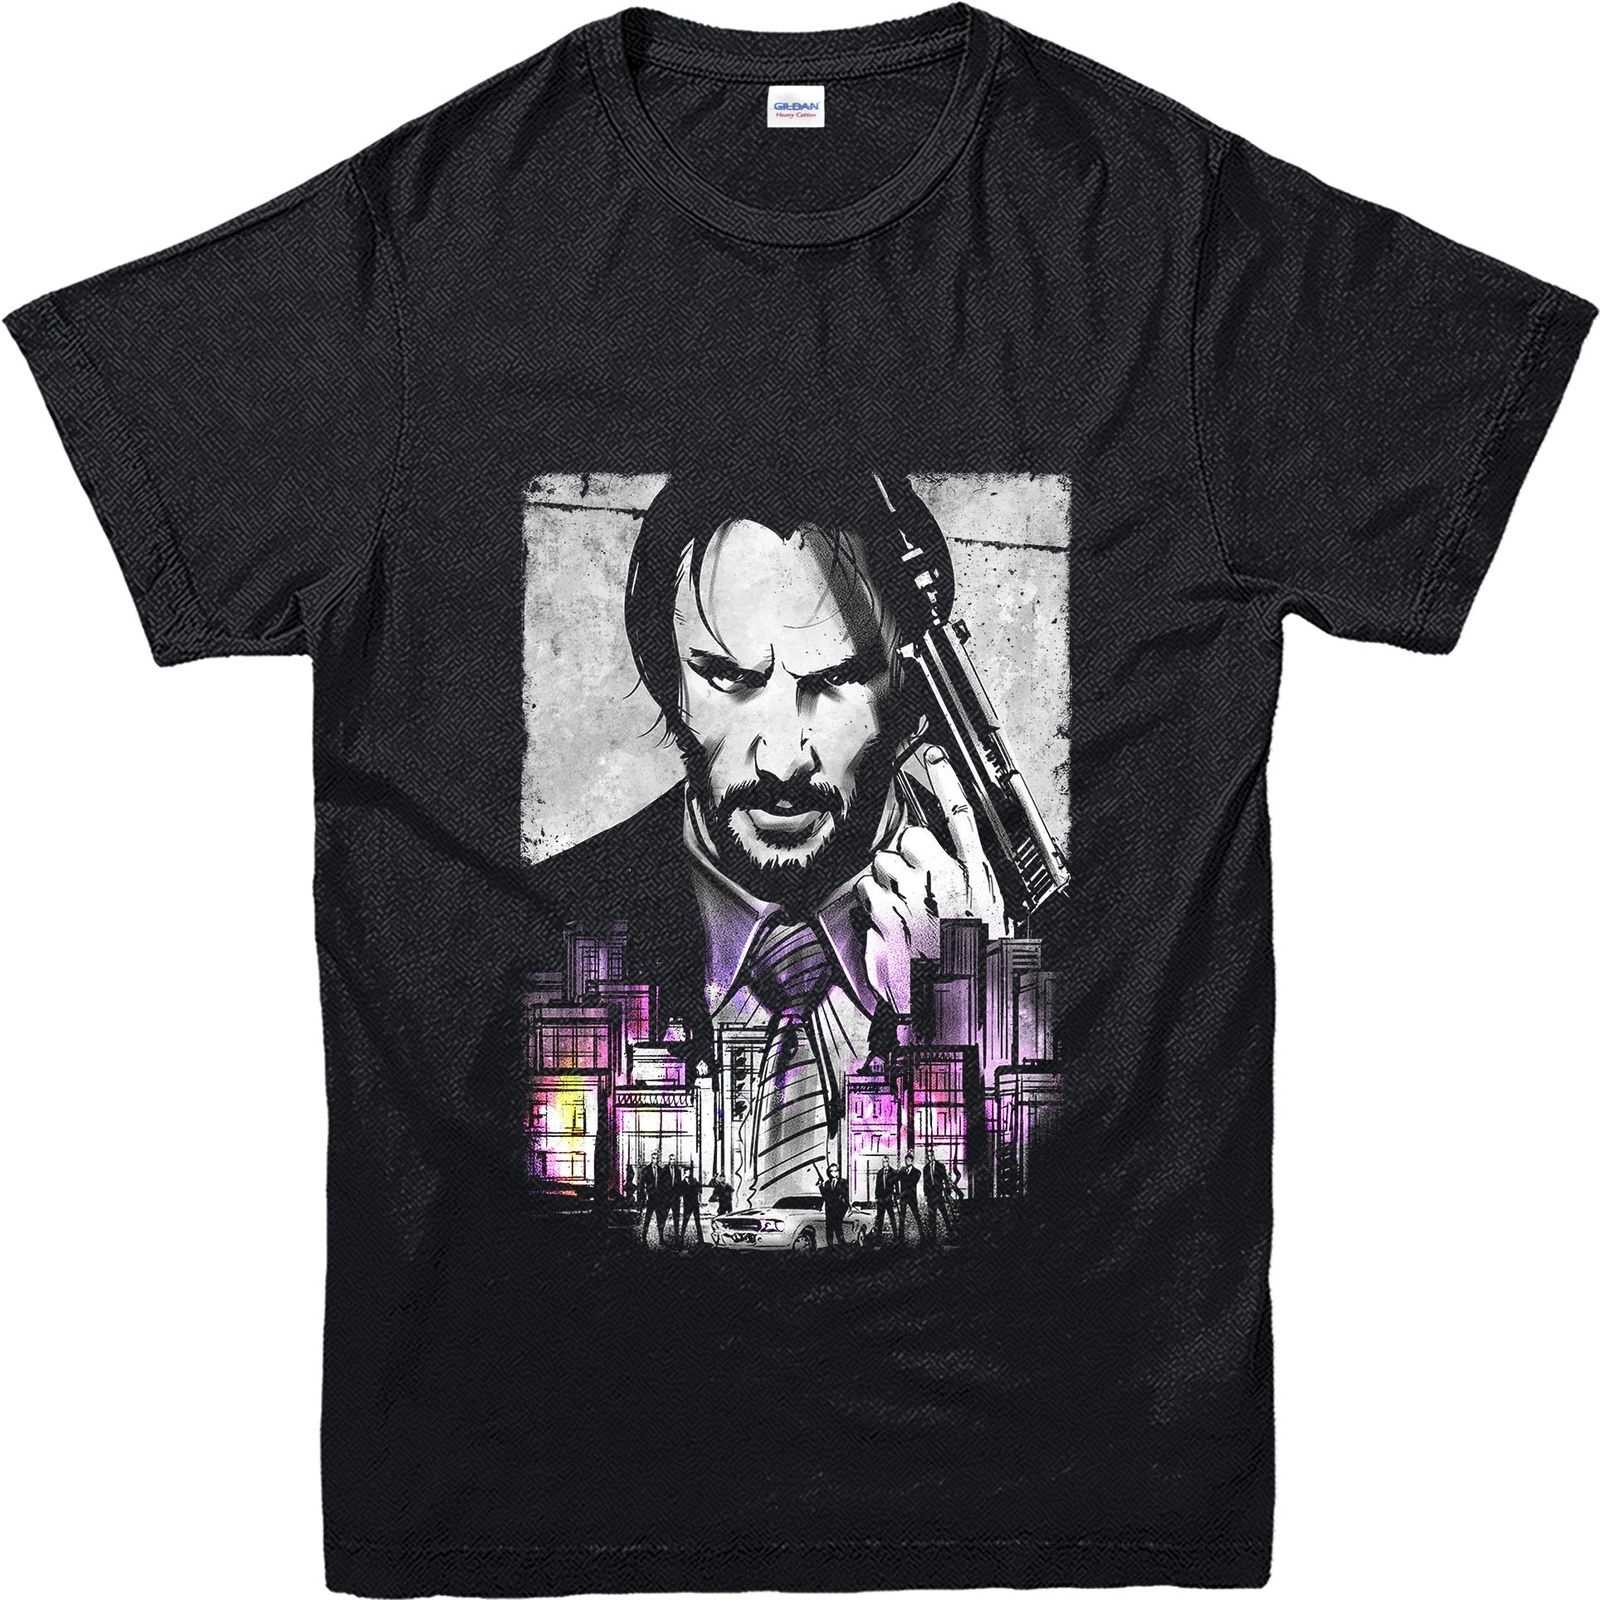 Men's Fashion T-Shirt John Wick Keanu Reeves City Poster T-Shirt Men Cotton T Shirt Funny Shirts